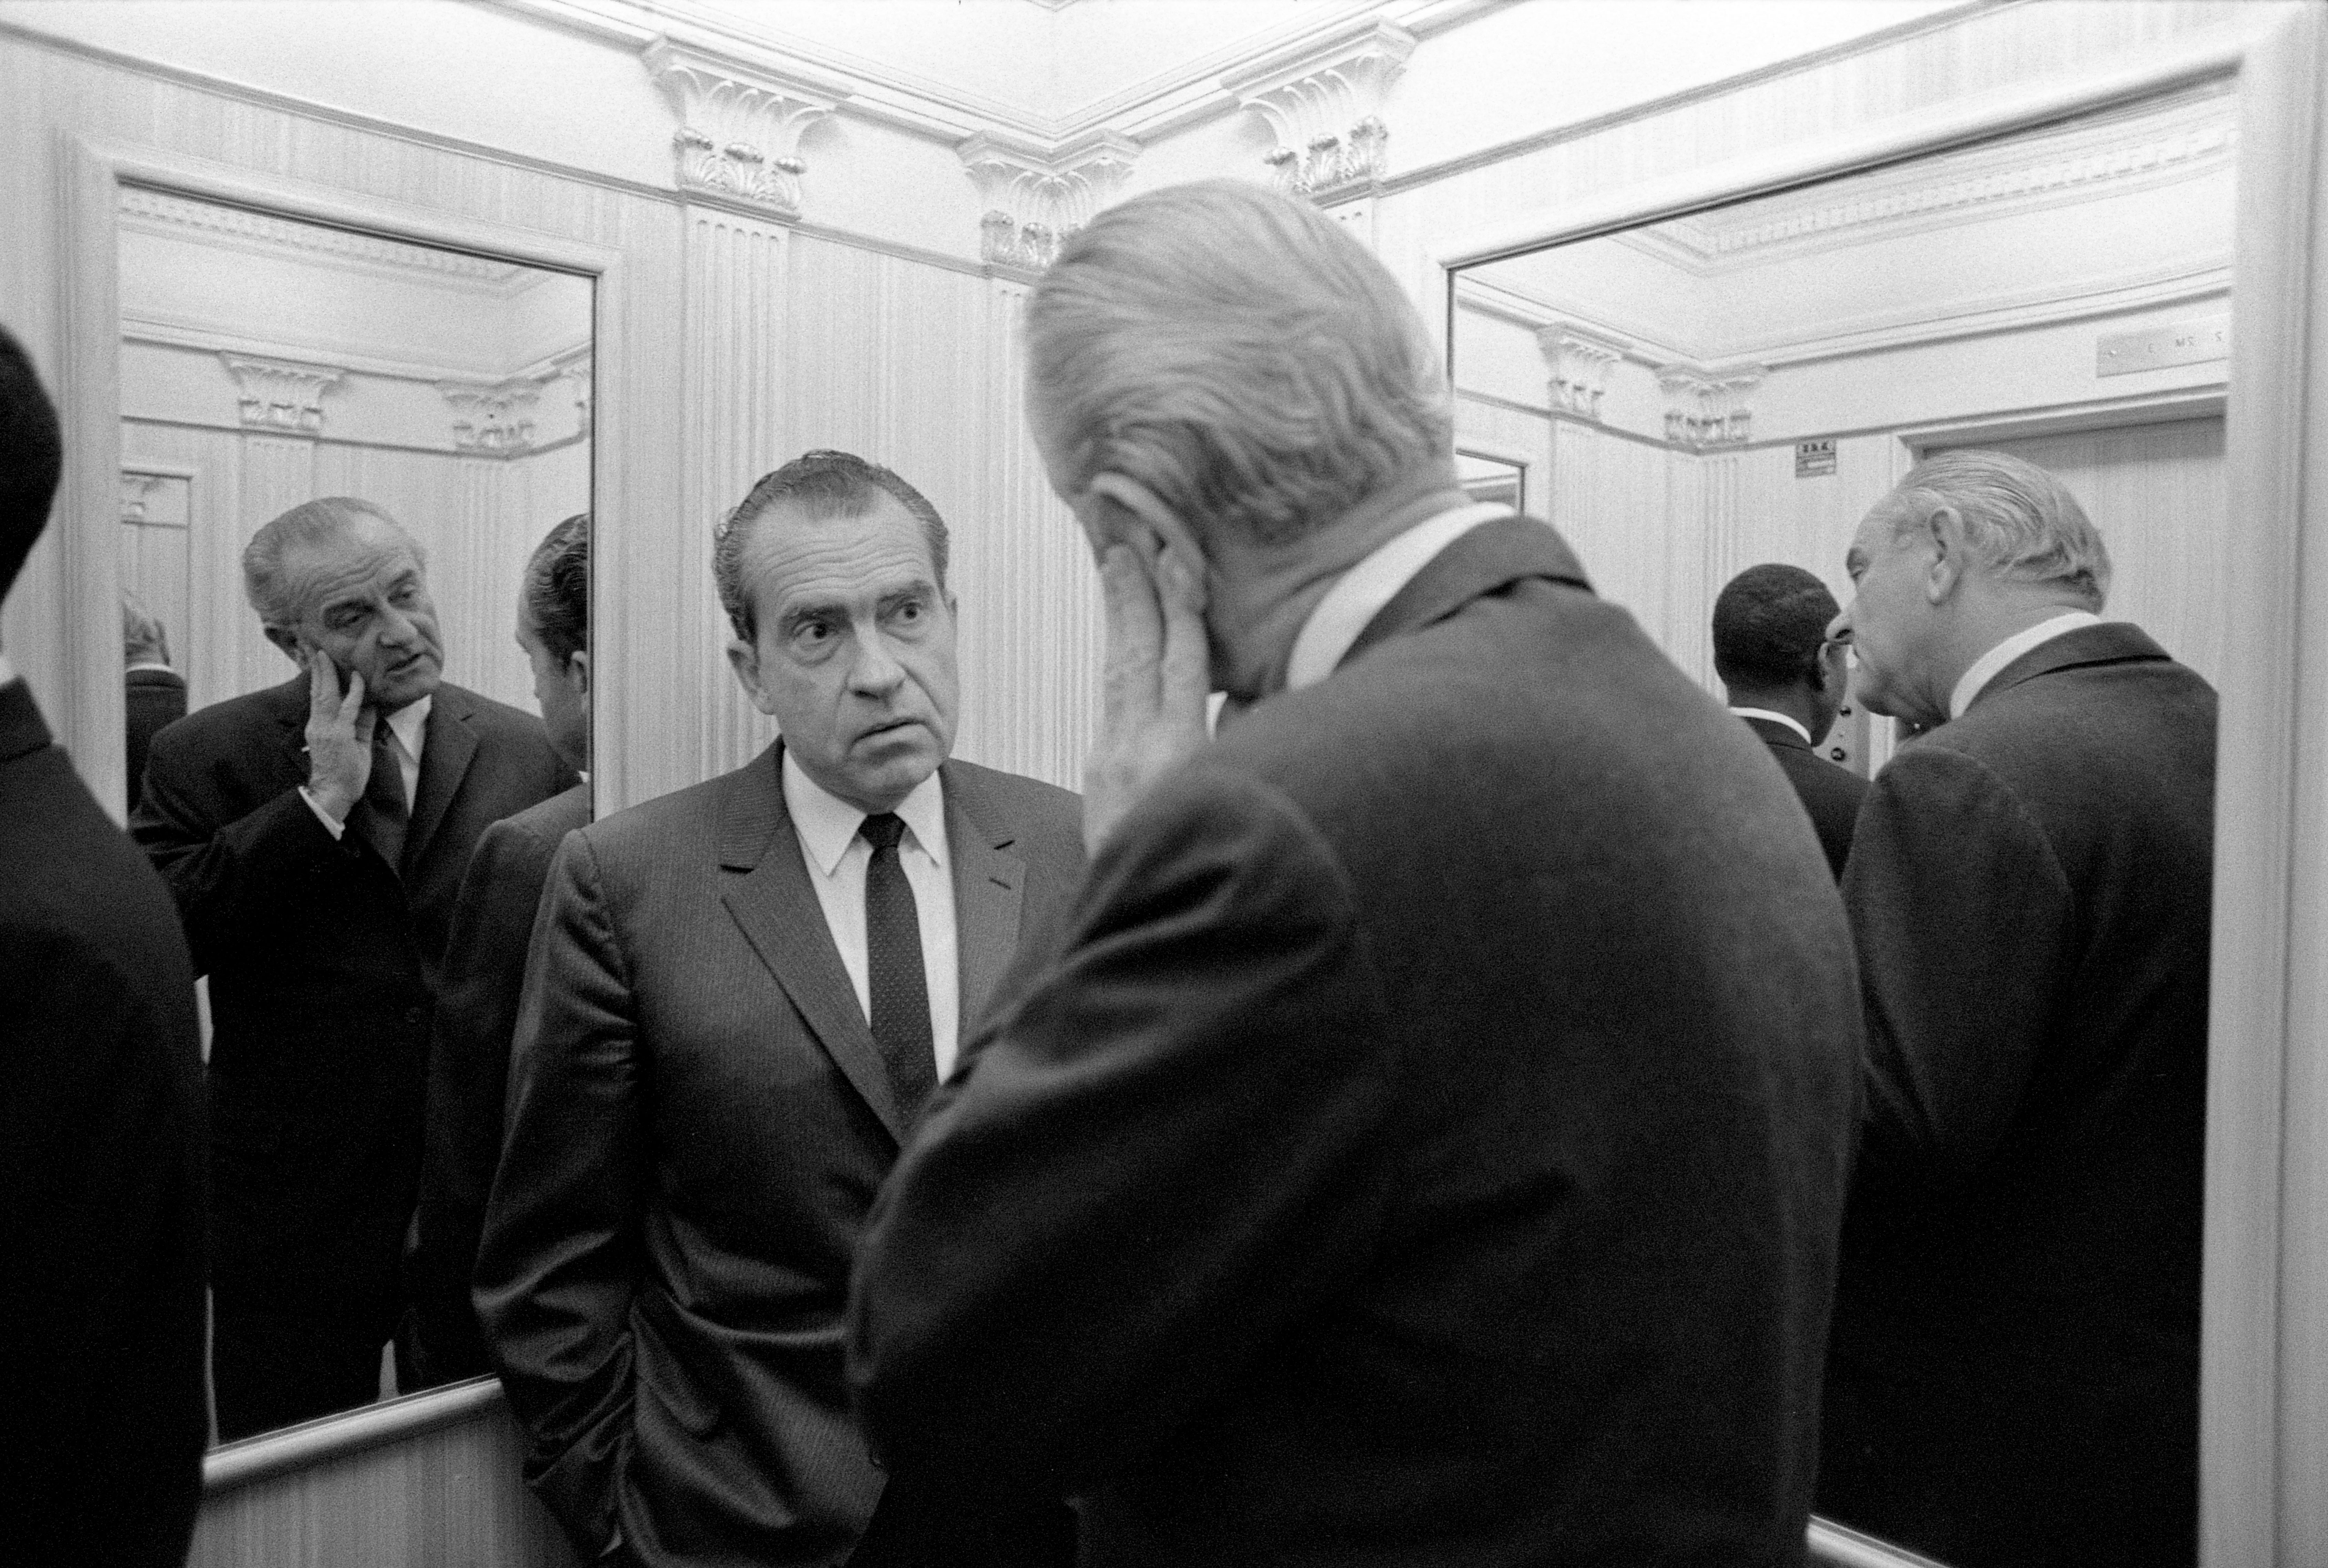 INTERFERENCE IN THE 1968 US PRESIDENTIAL ELECTION Title